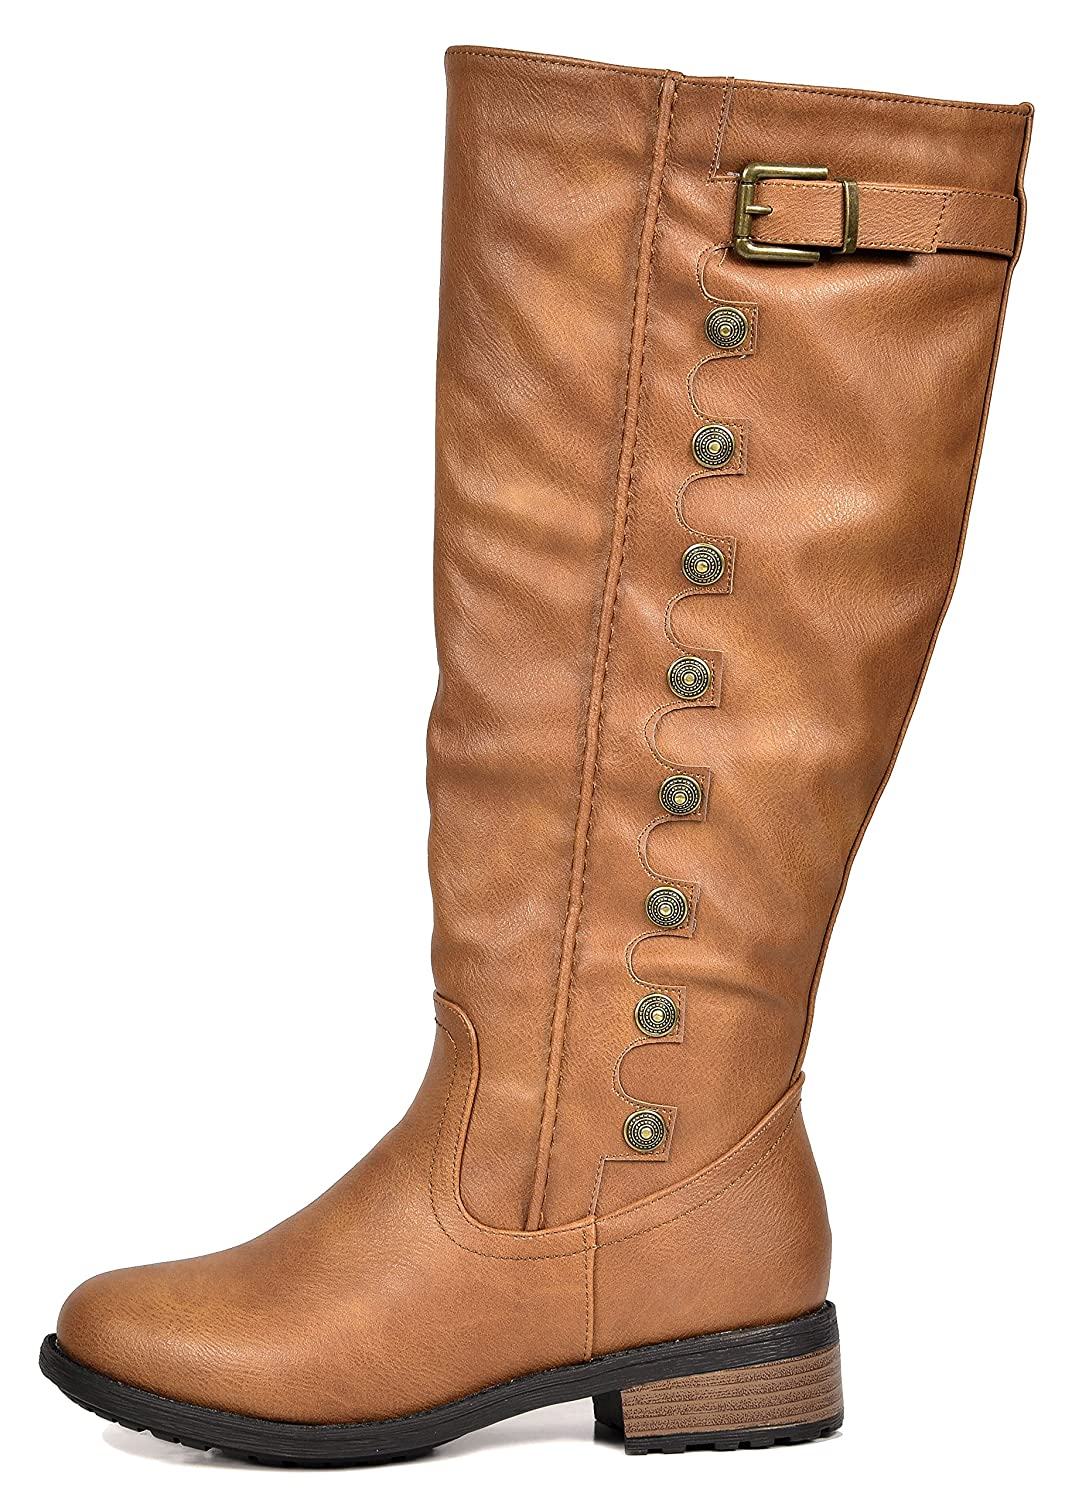 191c90f06f6 DREAM PAIRS Utah Women s Quilted Zipper Double Buckles Accent Round Toe Low  Stacked Heel Riding Knee High Boots (Wide Calf Available)  Amazon.ca  Shoes    ...